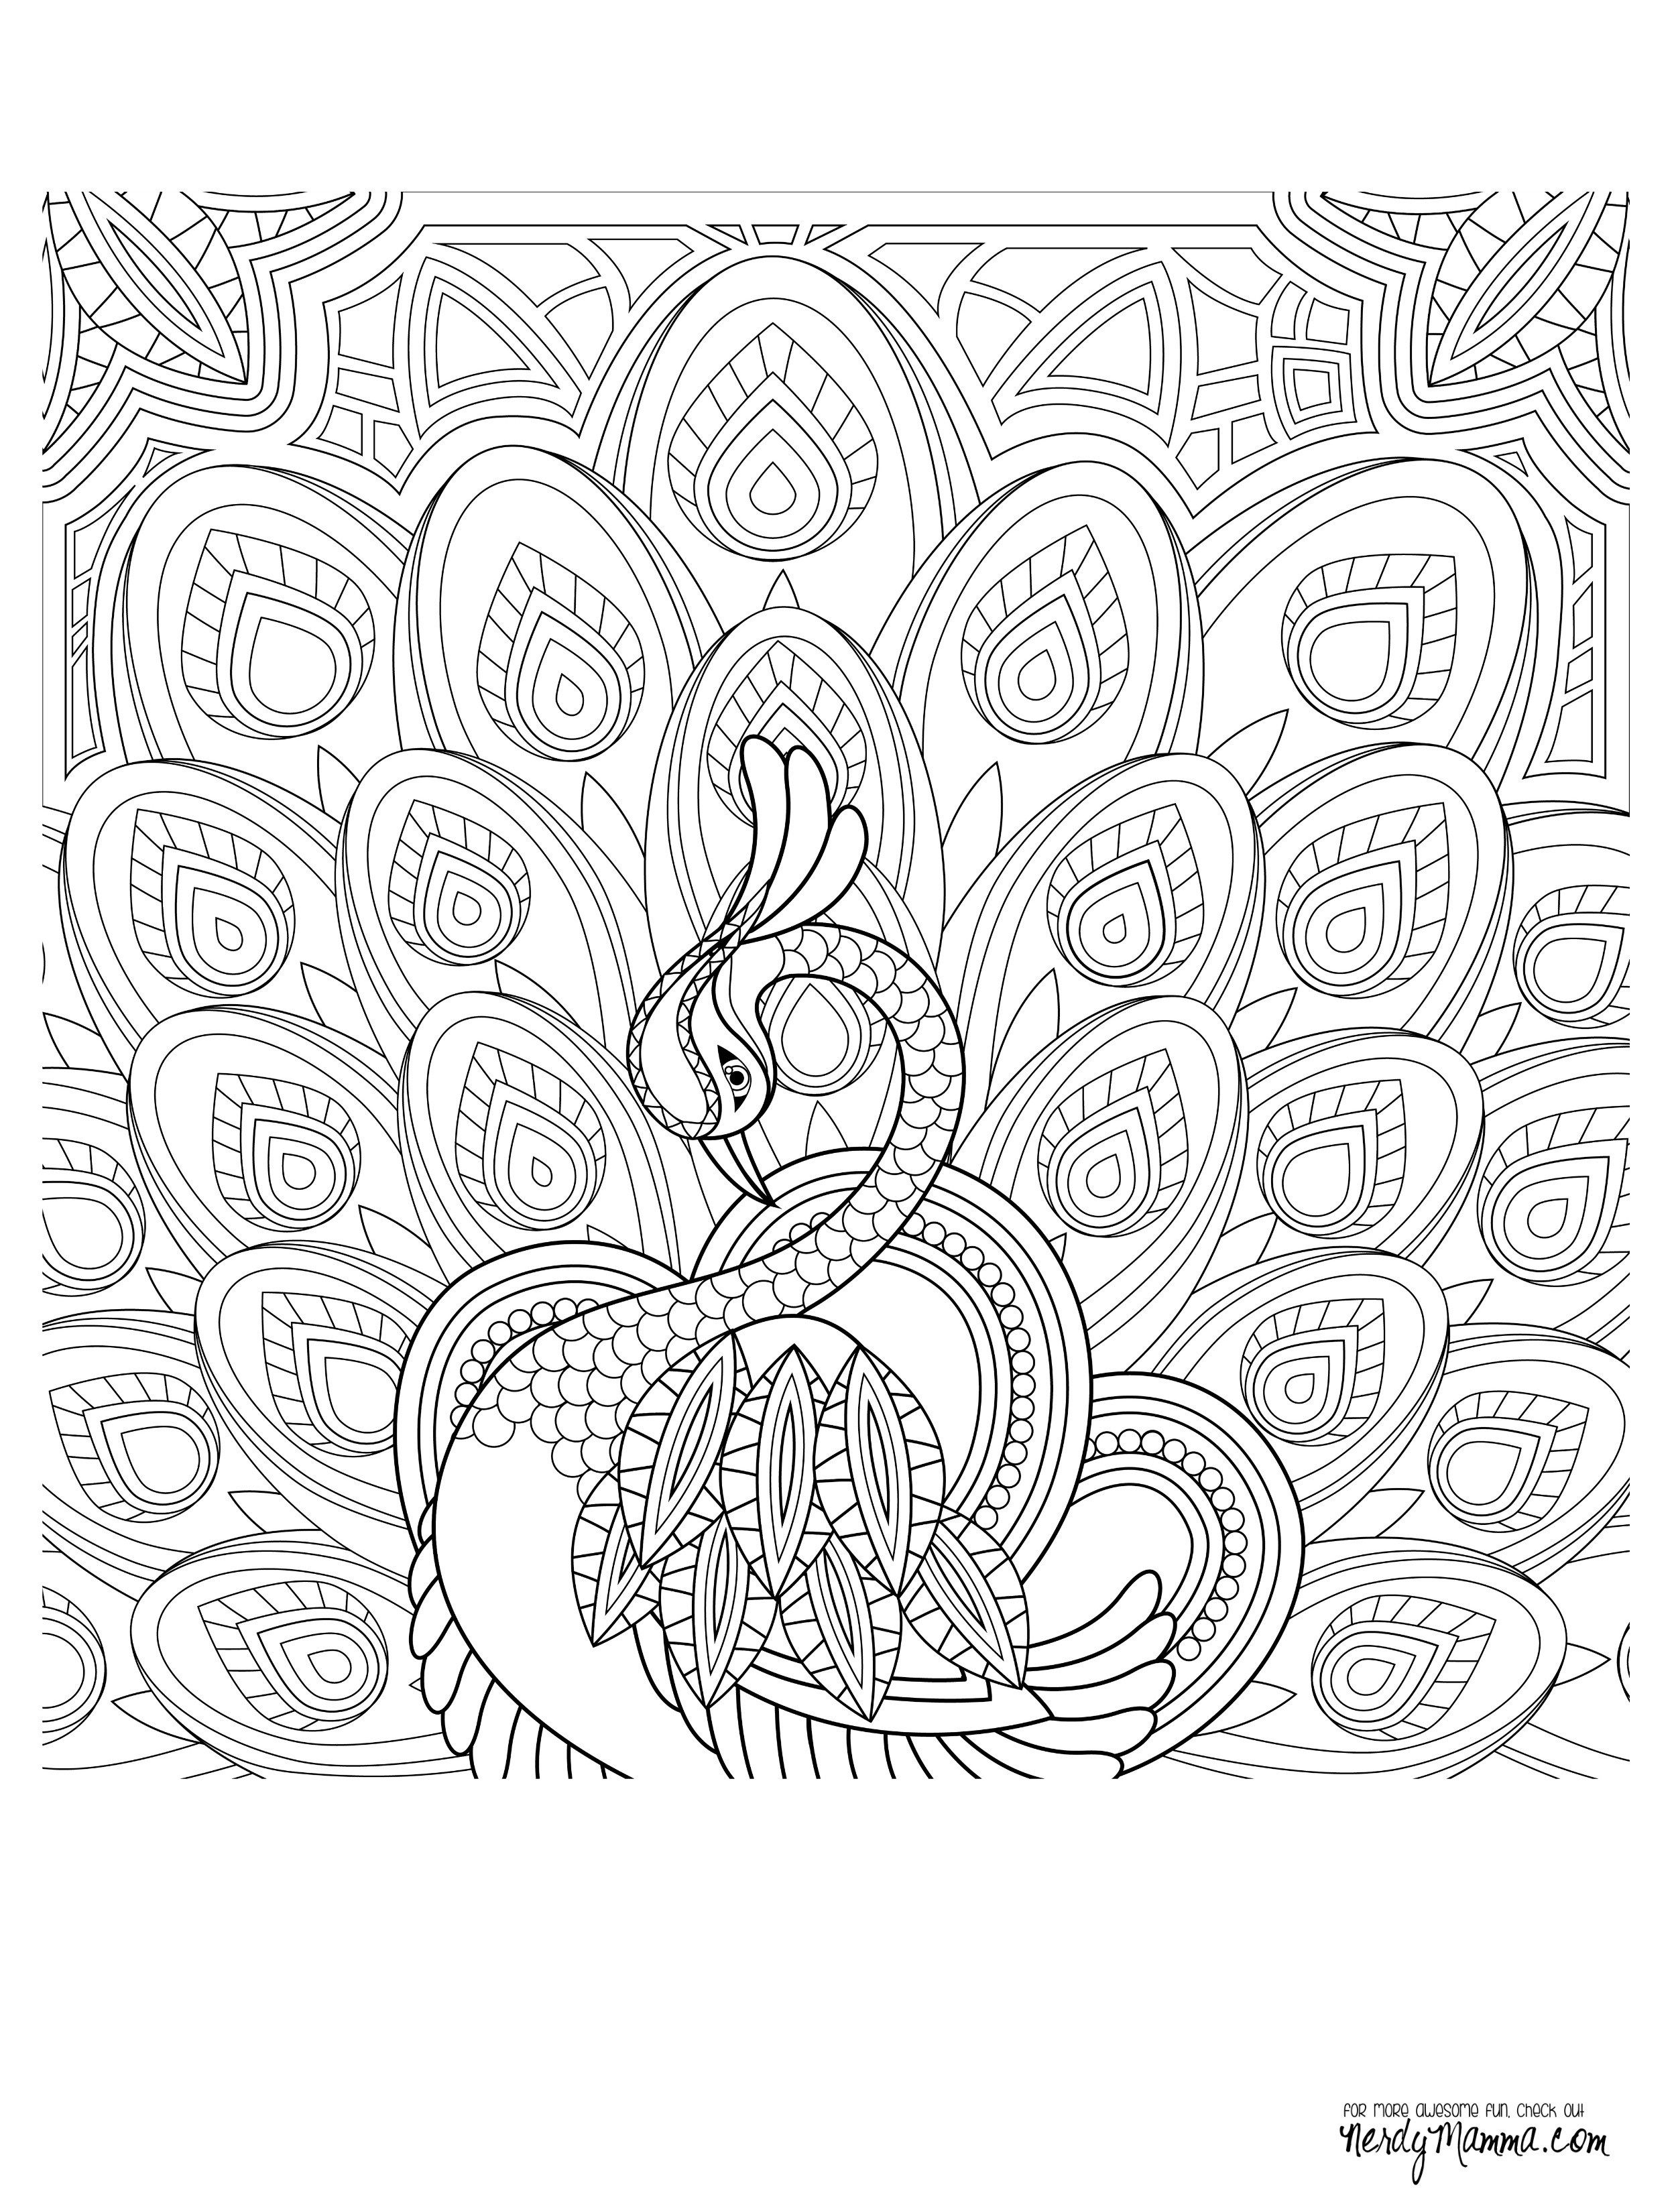 Peacock Feather Coloring Pages Colouring Adult Detailed Advanced Printable Kleuren Voor Volwassenen Coloriage Pour Adulte Anti Stress Kleurplaat